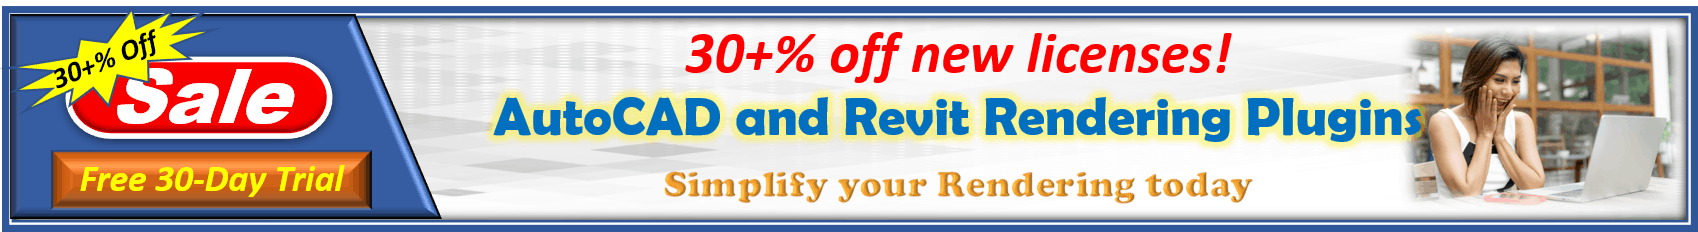 AutoCAD/Revit Rendering plug-in Sale